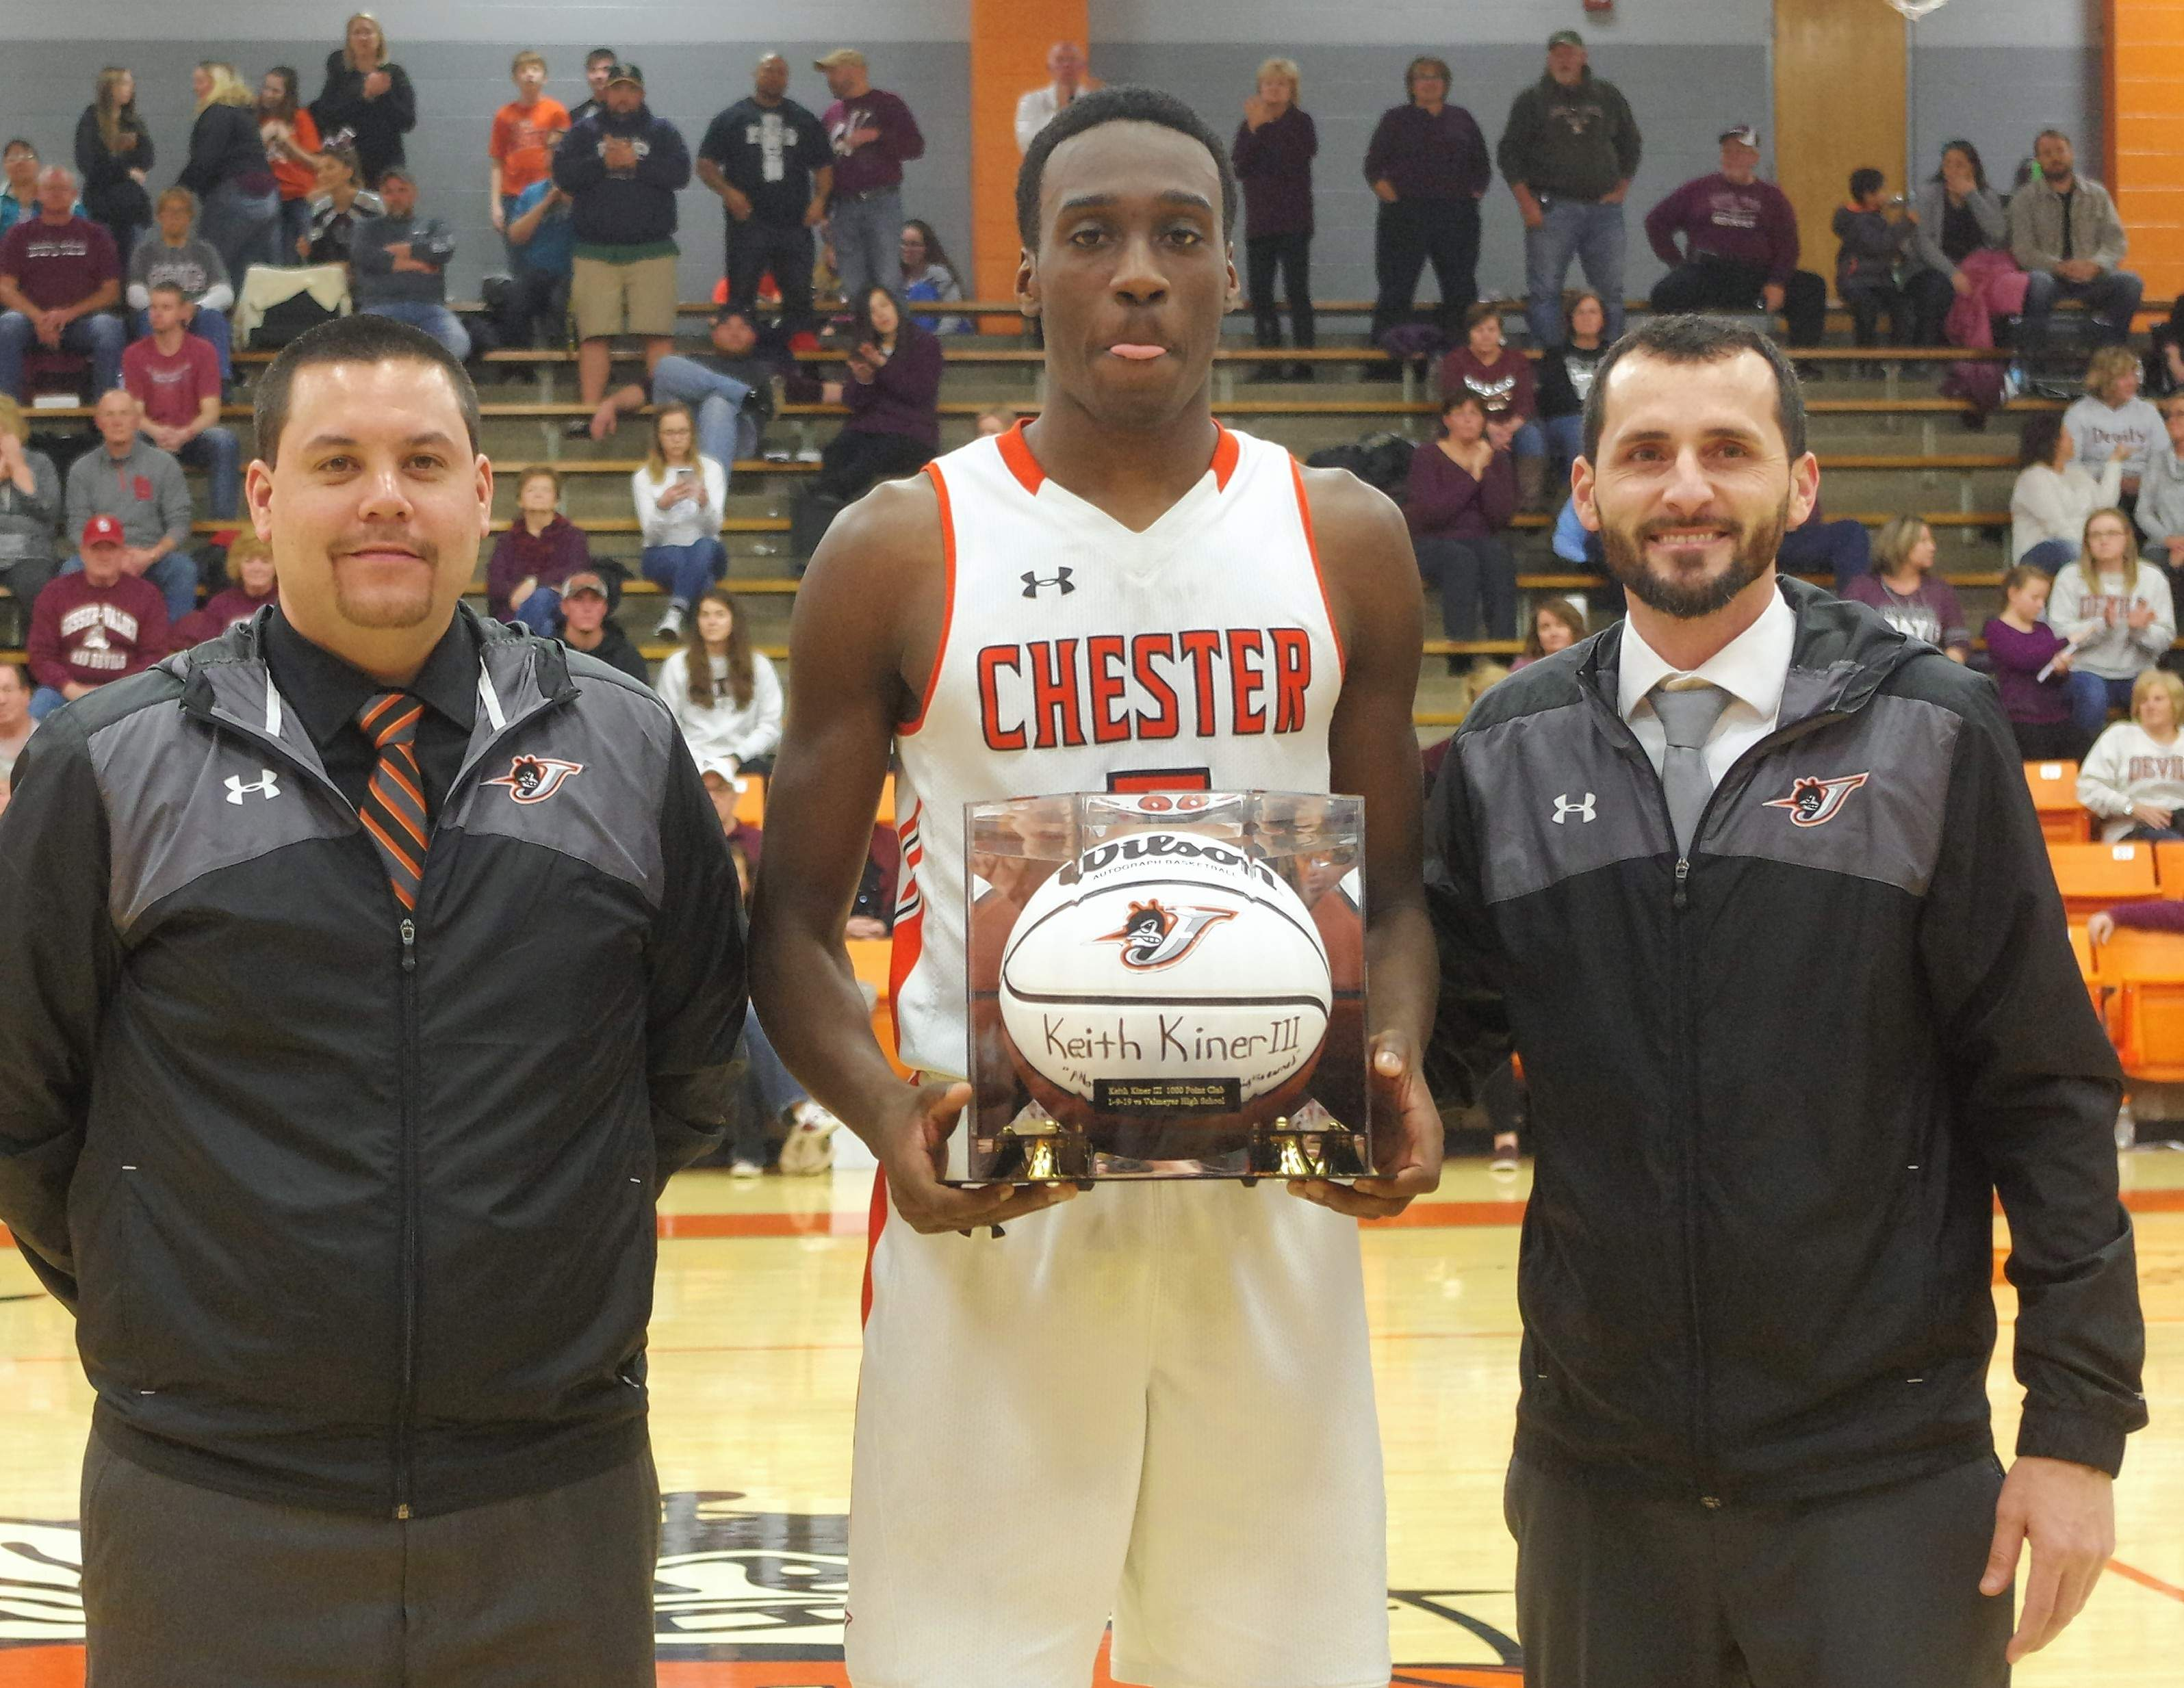 Keith Kiner III, center, with Assistant CHSBasketball Coach Chris Toledo, left, and Head Coach Brad Norman, following a special presentation prior to the start of the CHS vs. Sesser game on Feb. 16.Kiner was honored for scoring his 1,000th careerpoint this season.